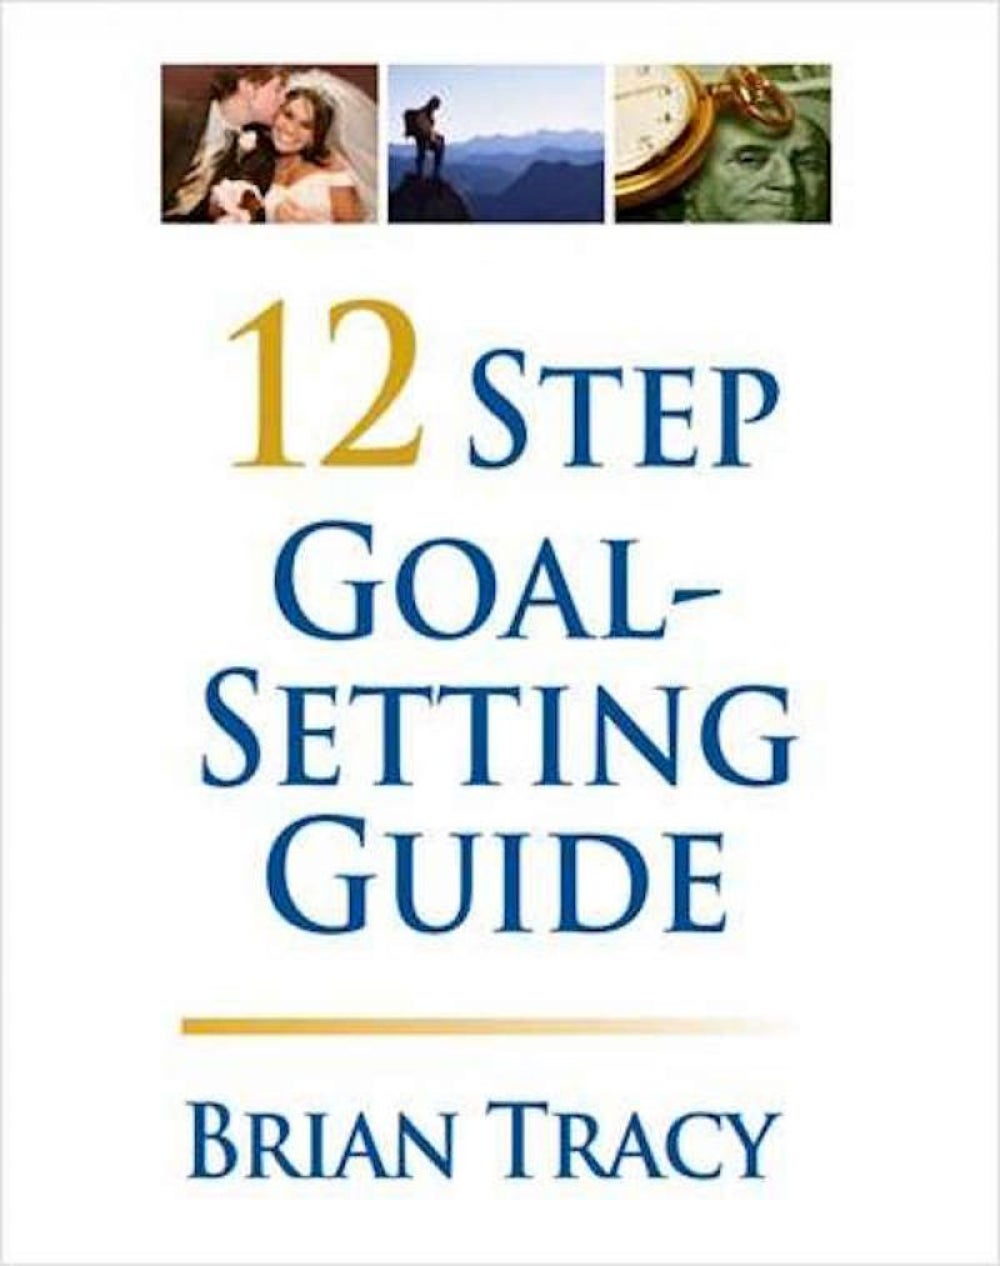 12 Step Goal-Setting Guide